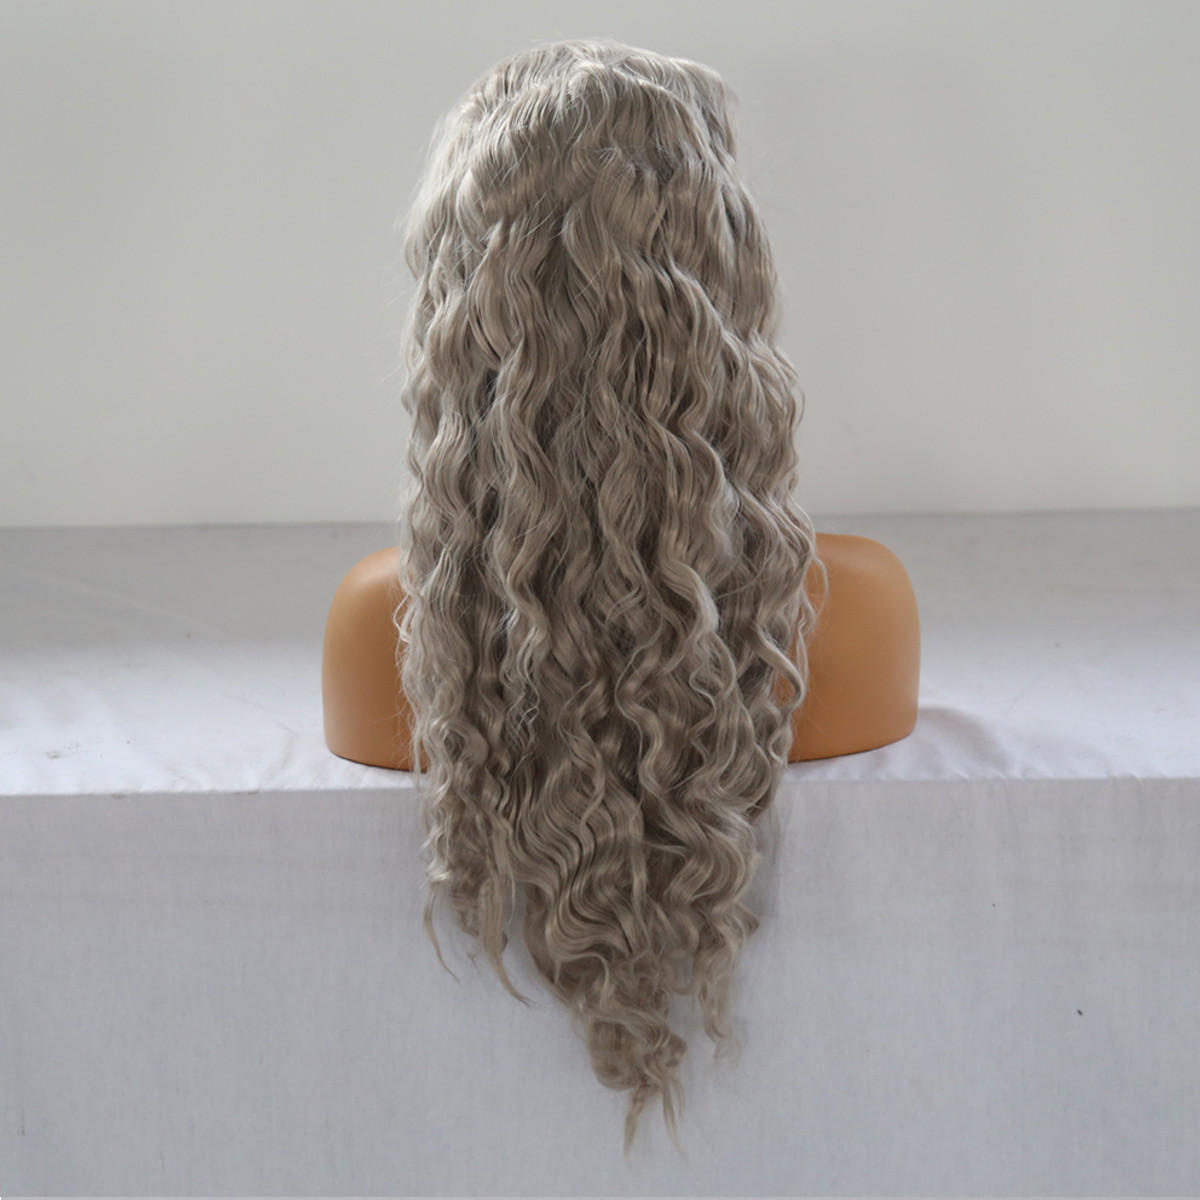 24 '' Frontale in pizzo ondulato naturale da donna Parrucca Girls Golden Blonde Curly Synthetic Capelli - 3